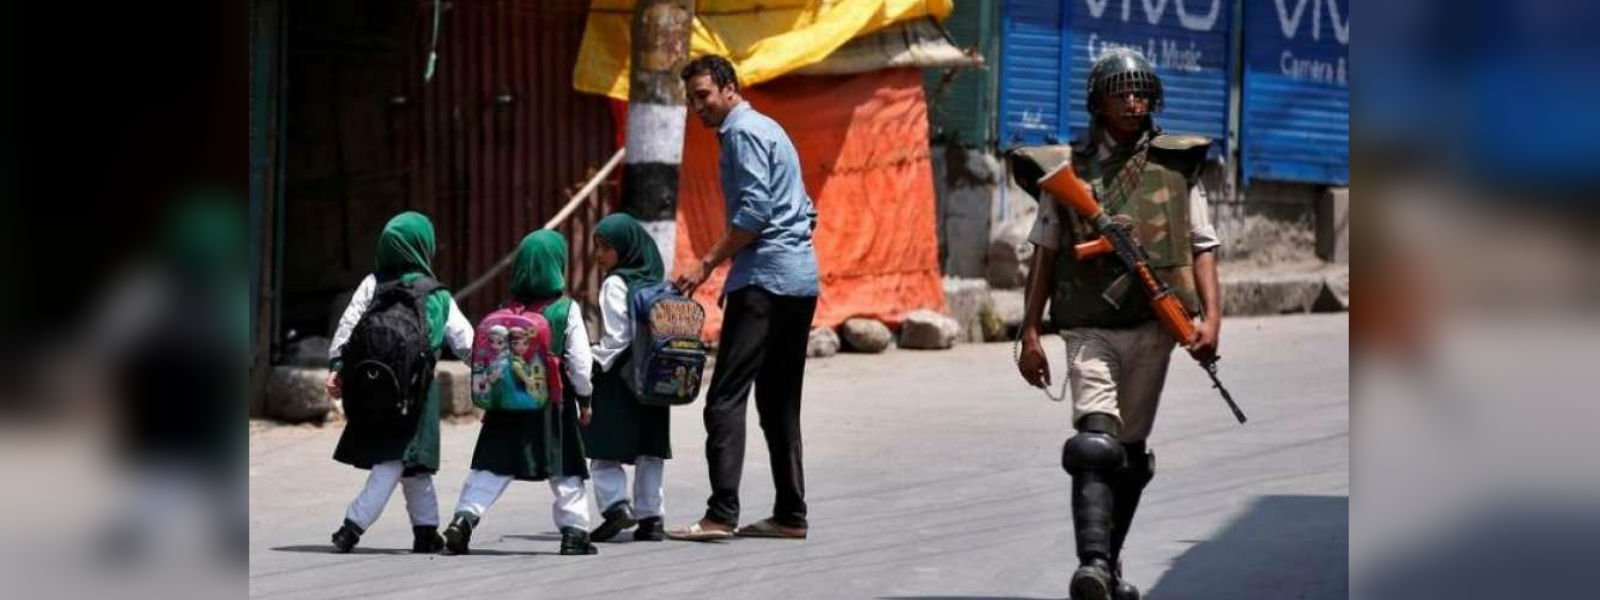 Kashmir schools, offices reopen amid tight security